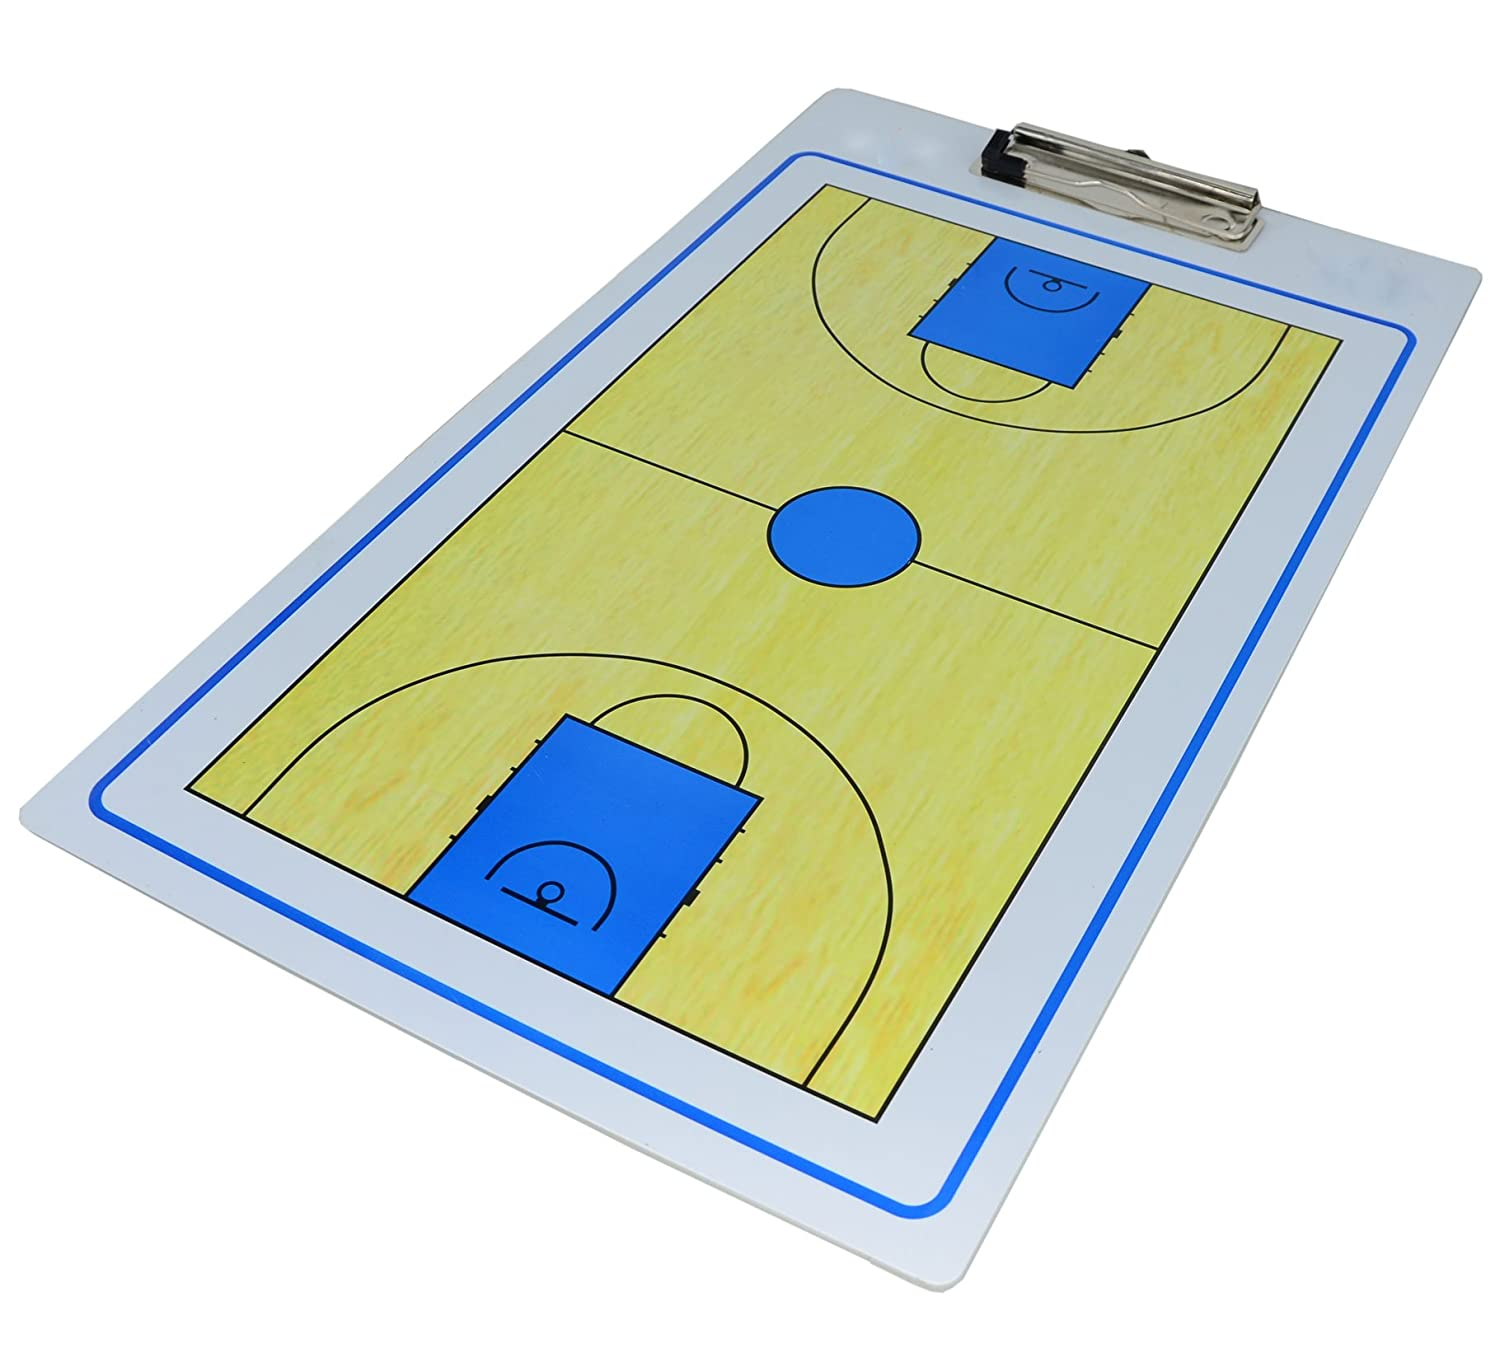 Dry-Erase Double Sided Basketball Tactics Coaching Board Clipboard ZSB1 (Color1) Spomei